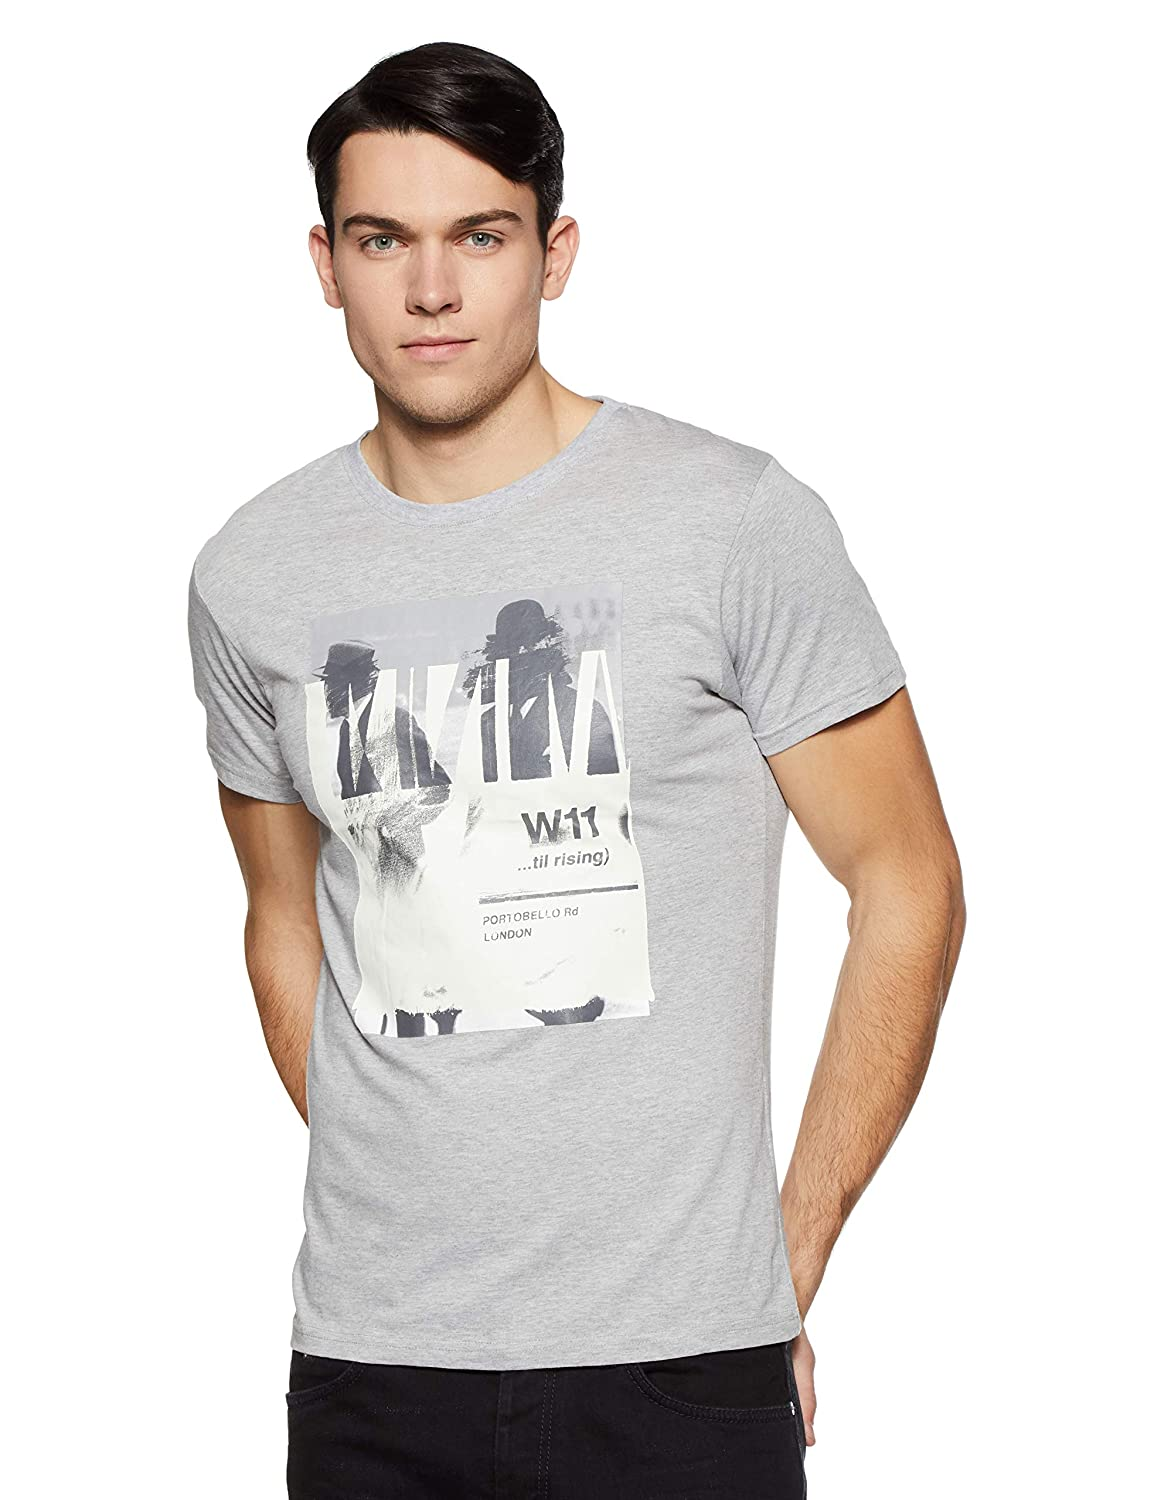 b252d64dc Pepe Jeans Pack Of 3 T Shirts Online India – EDGE Engineering and ...